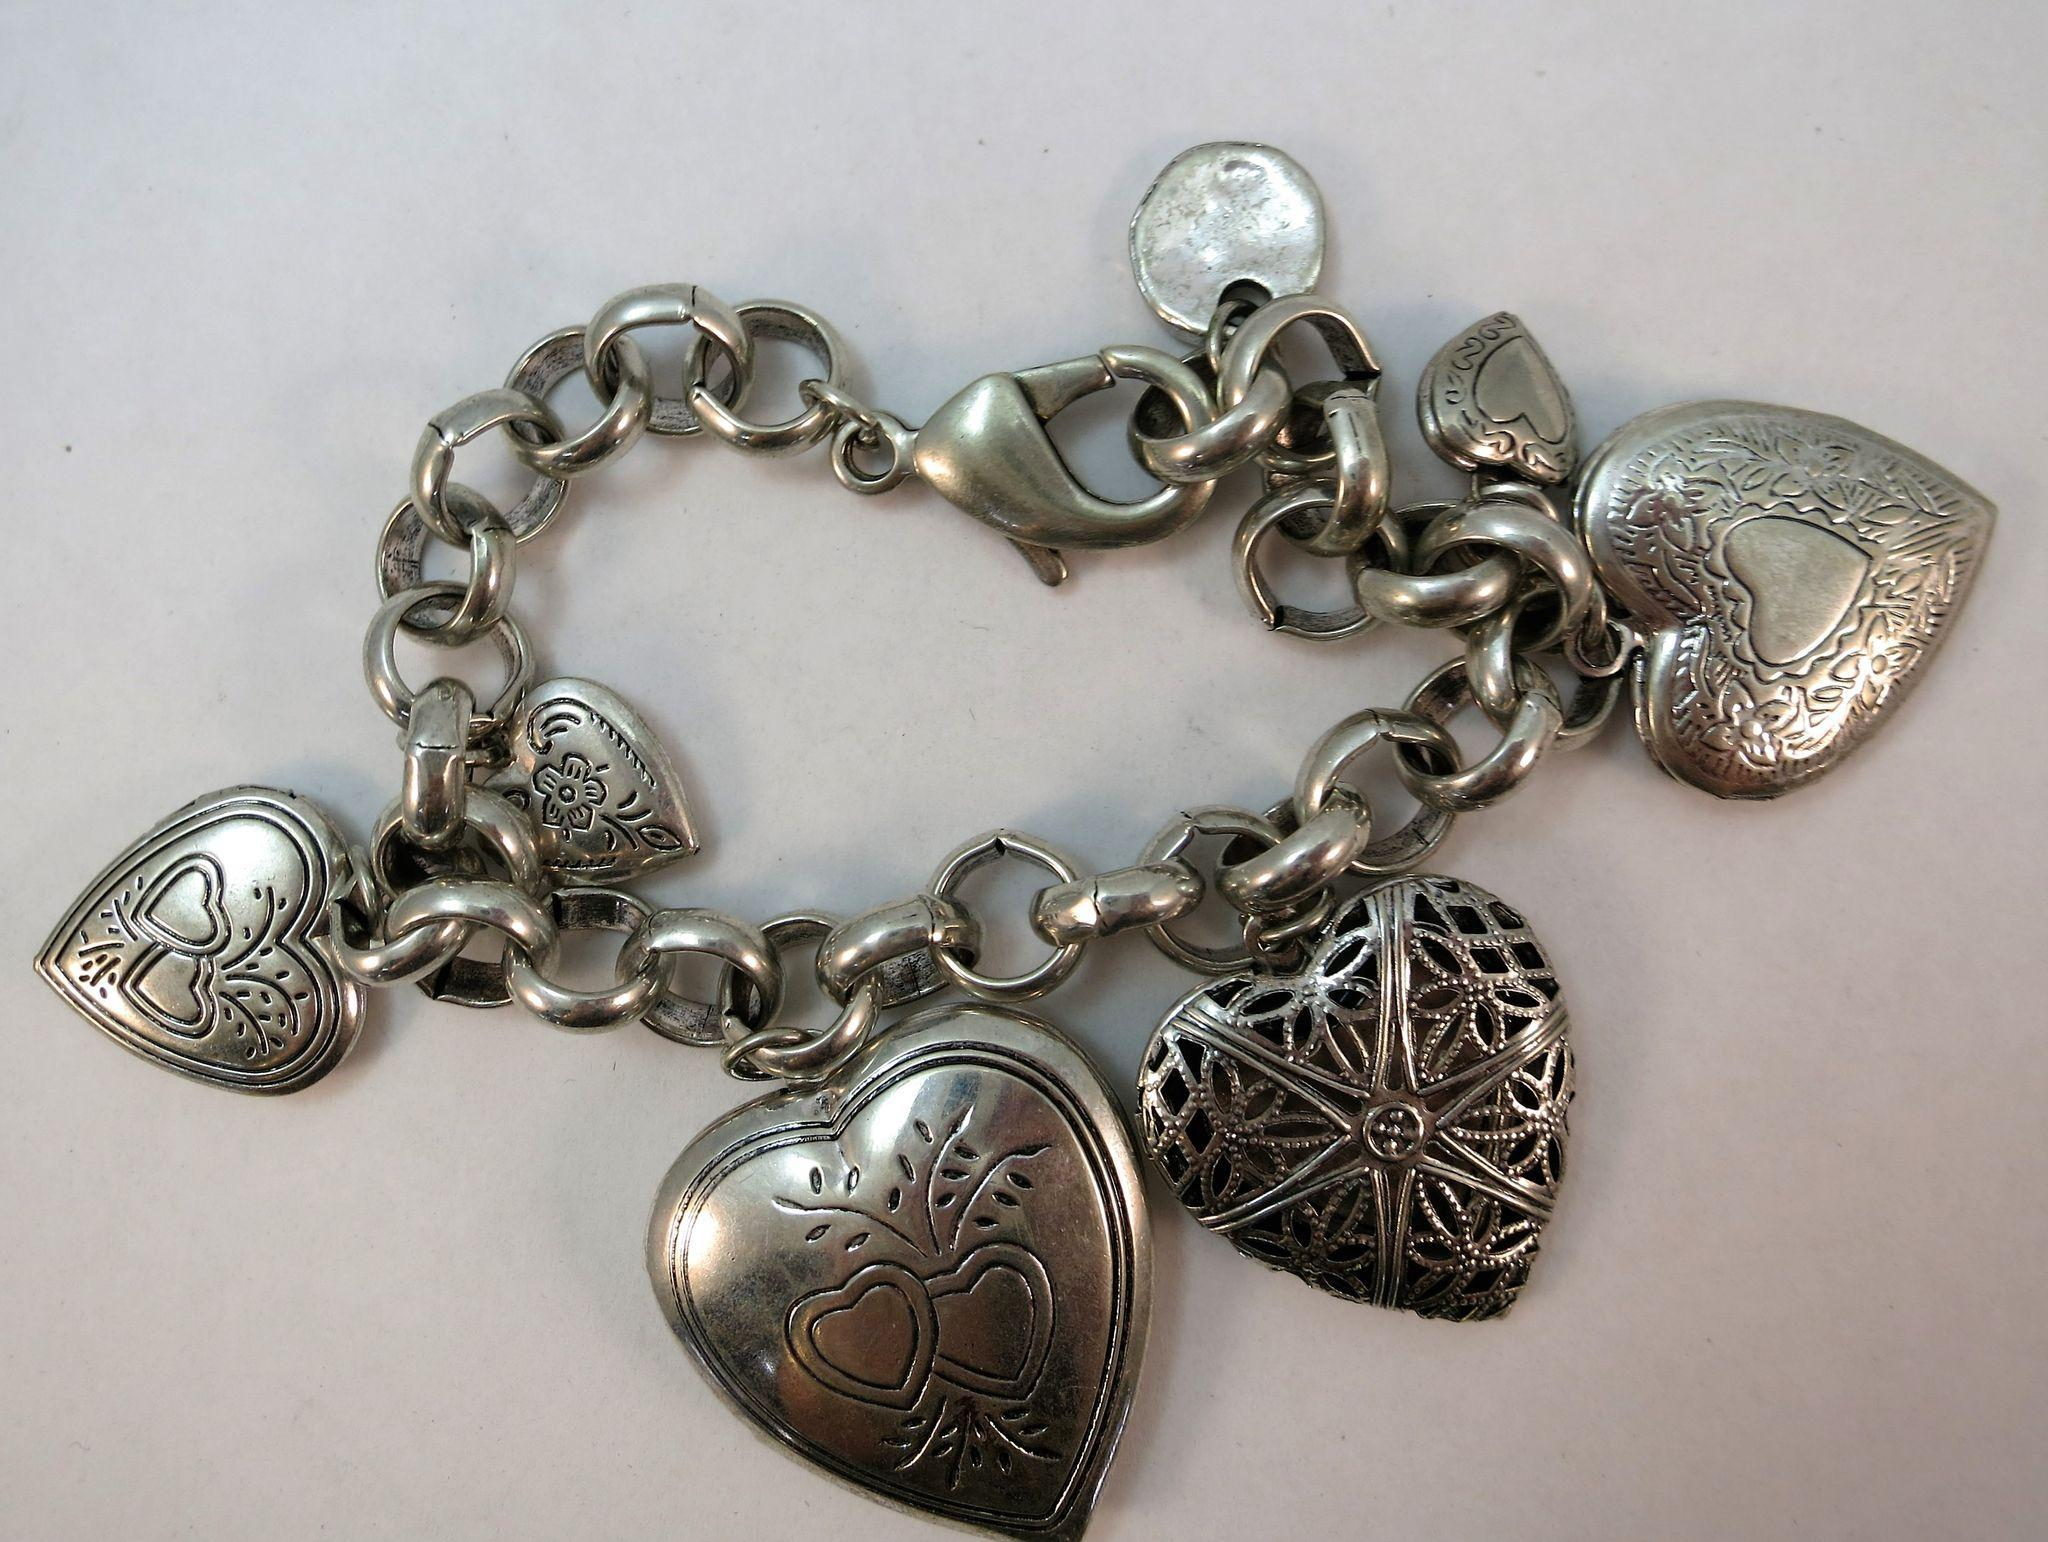 VINTAGE Charm Bracelet with 6 Lockets that Open 7 3/4 Inch Length